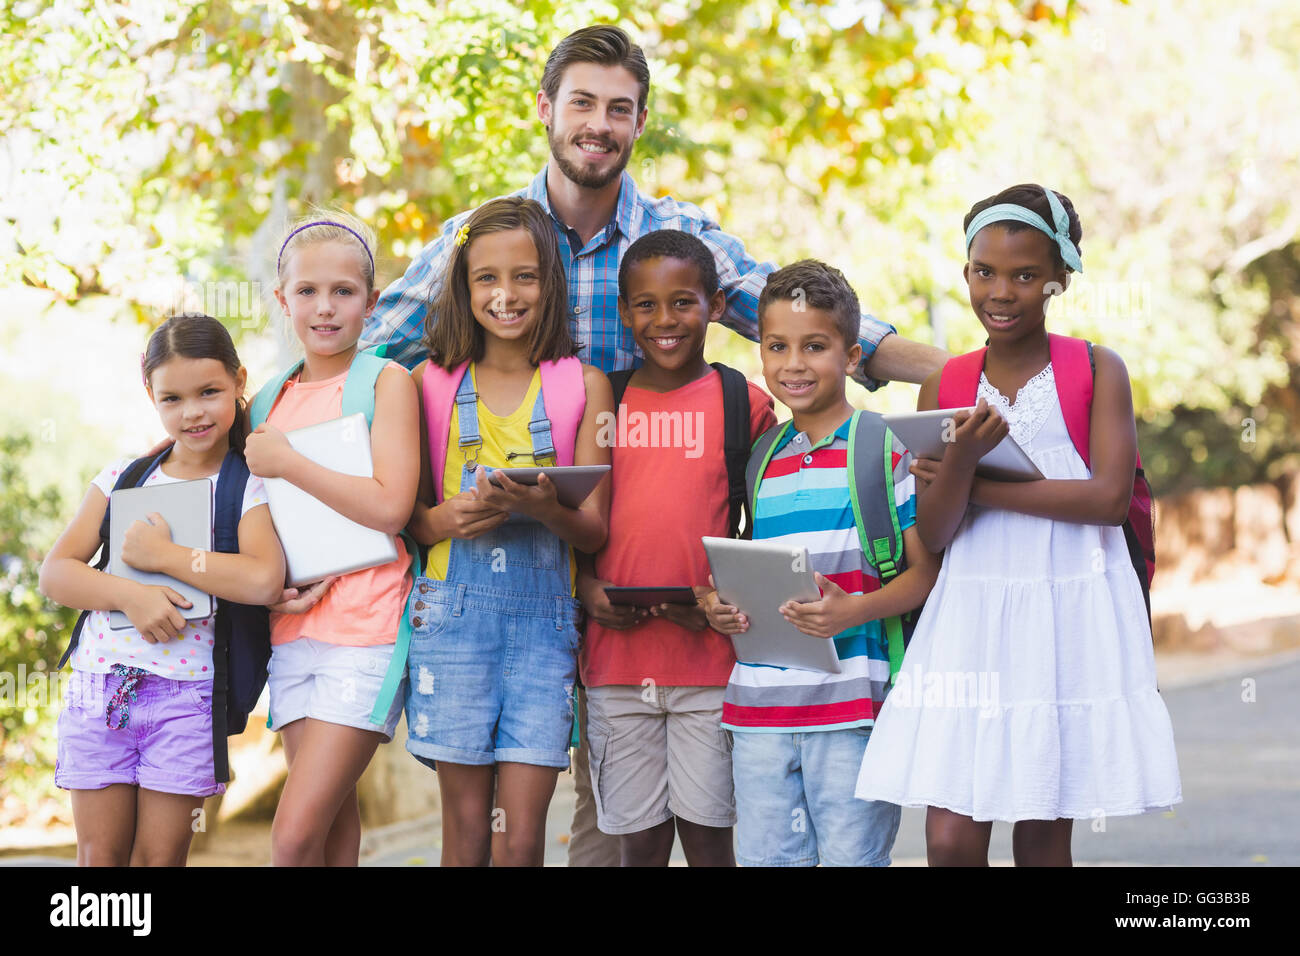 Teacher standing with school kids - Stock Image